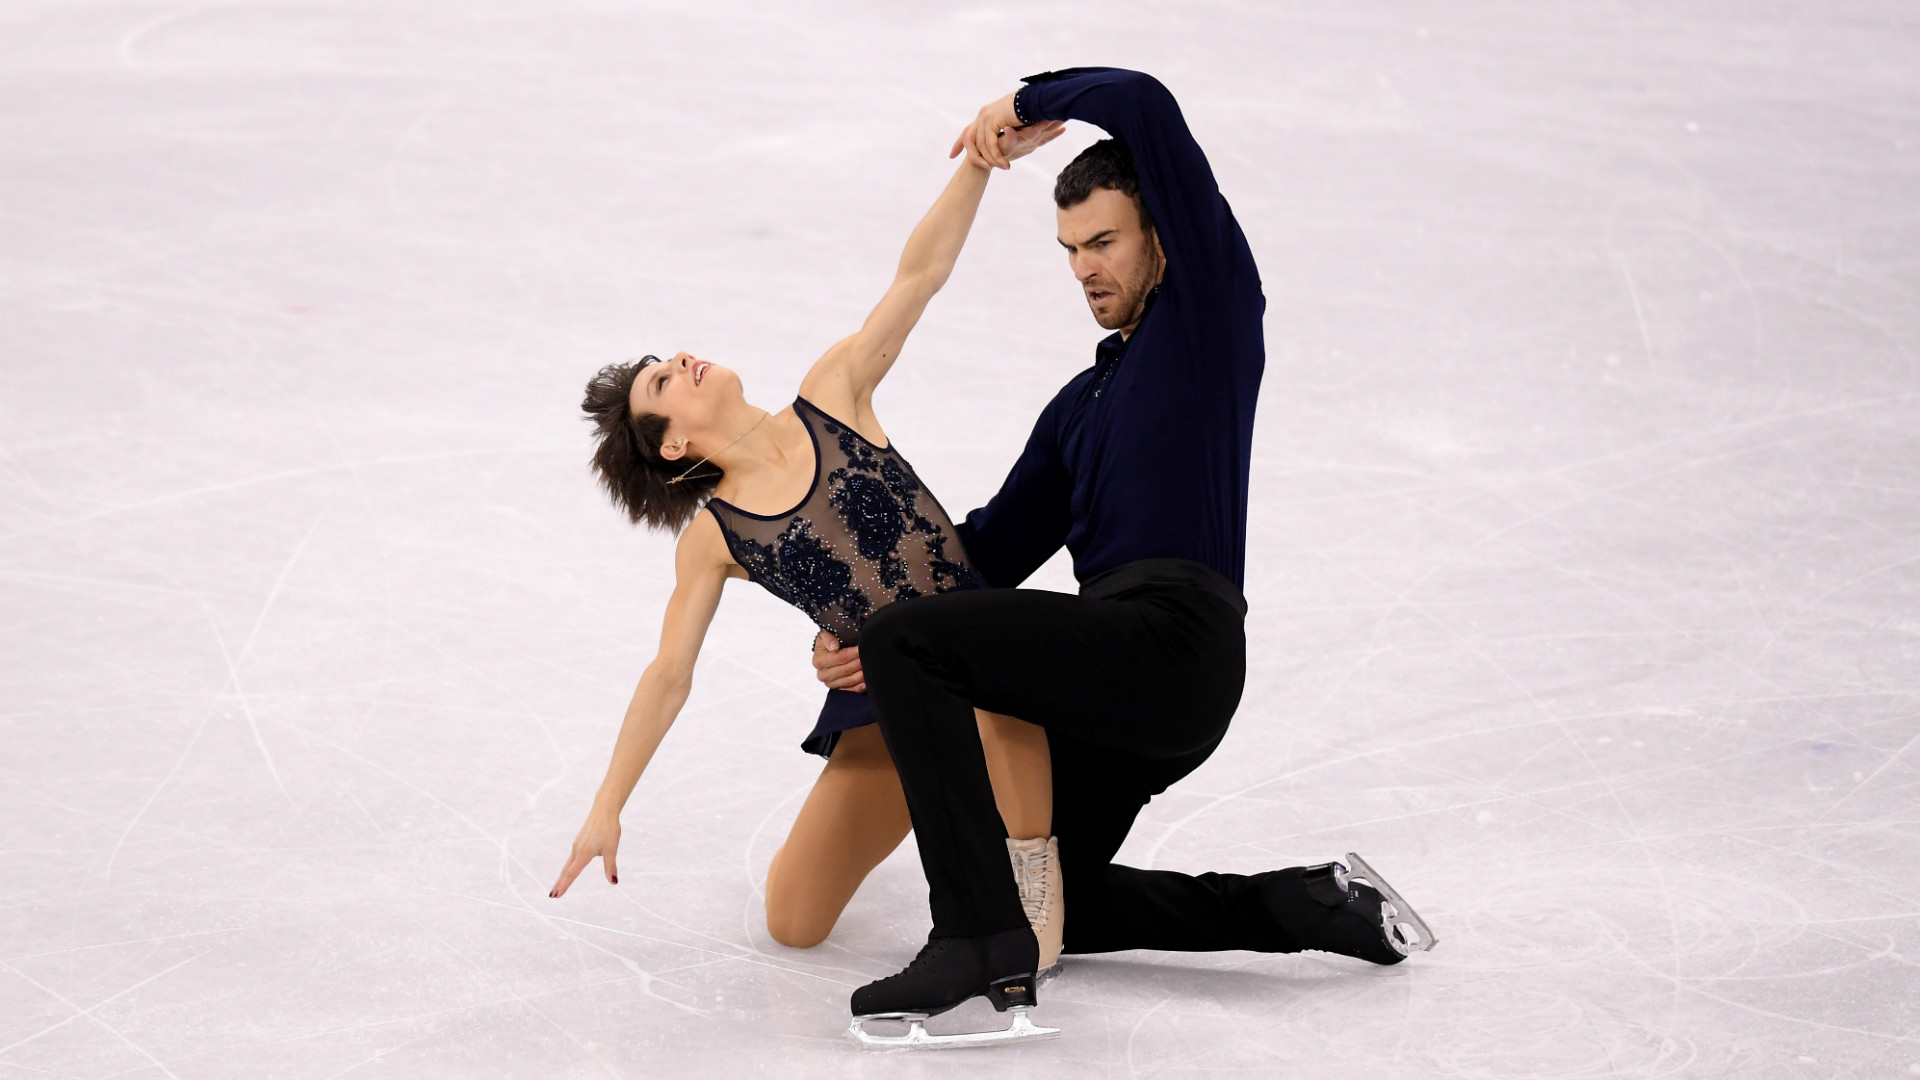 Praise for gay Olympic champ Eric Radford